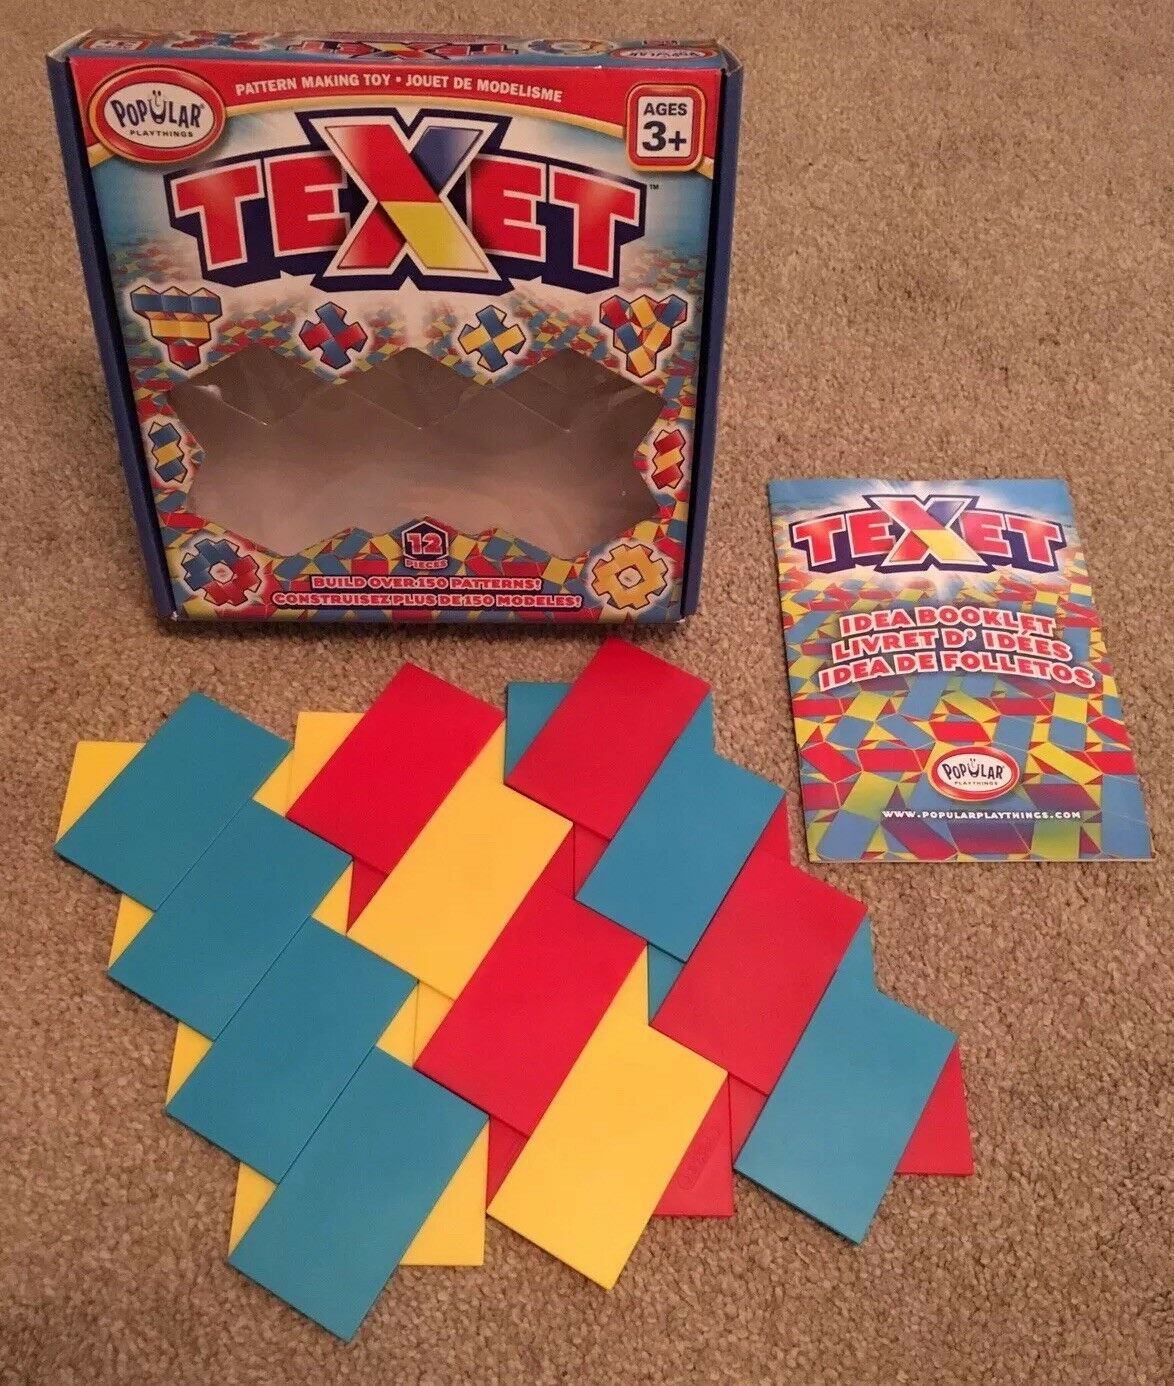 Texet Puzzle Pattern Tile Game Brain Teaser - Popular Playthings COMPLETE